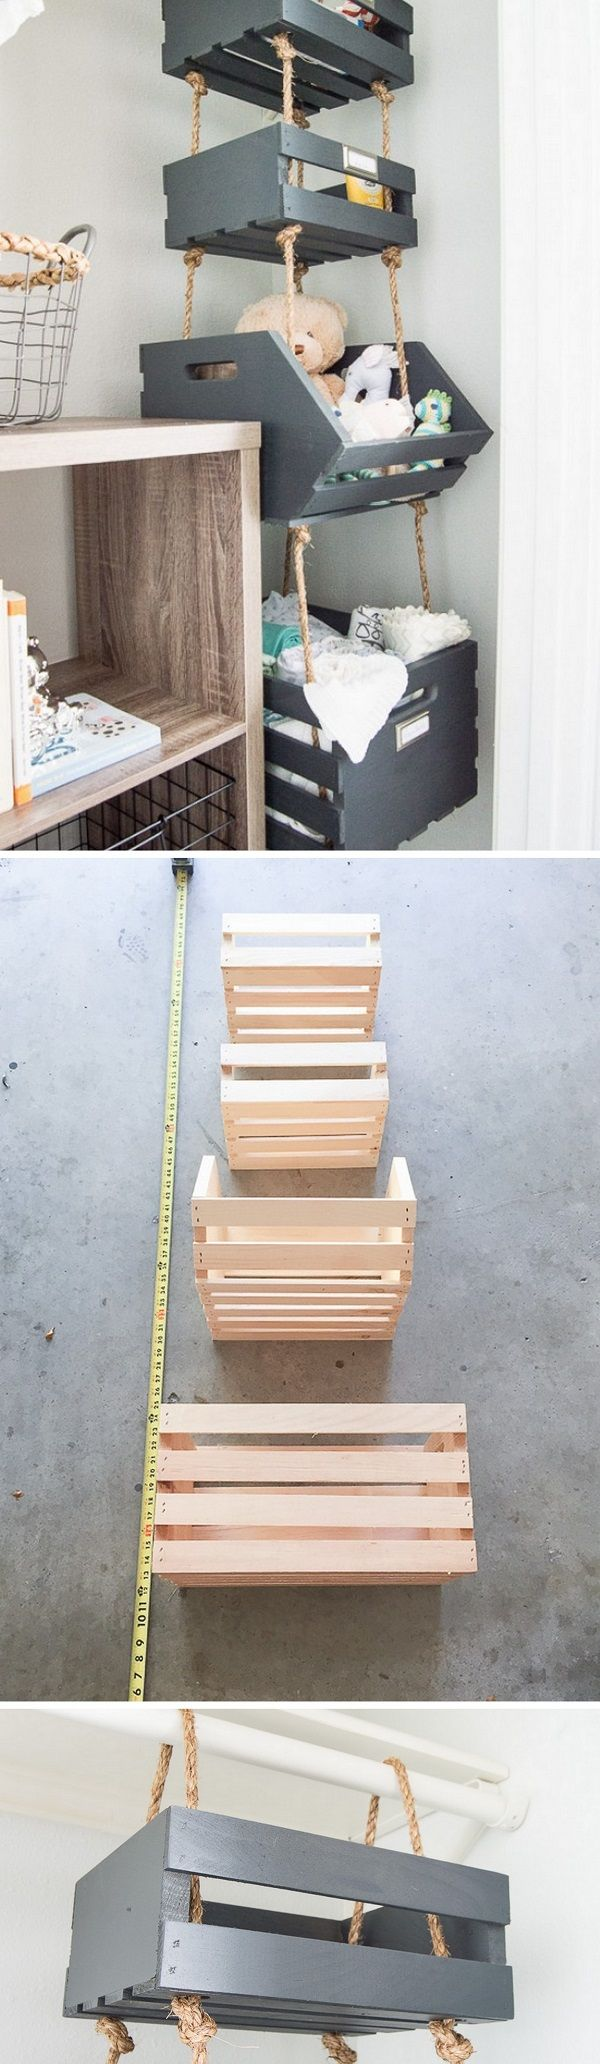 Check out the tutorial how to make DIY hanging closet crate shelves @istandarddesign